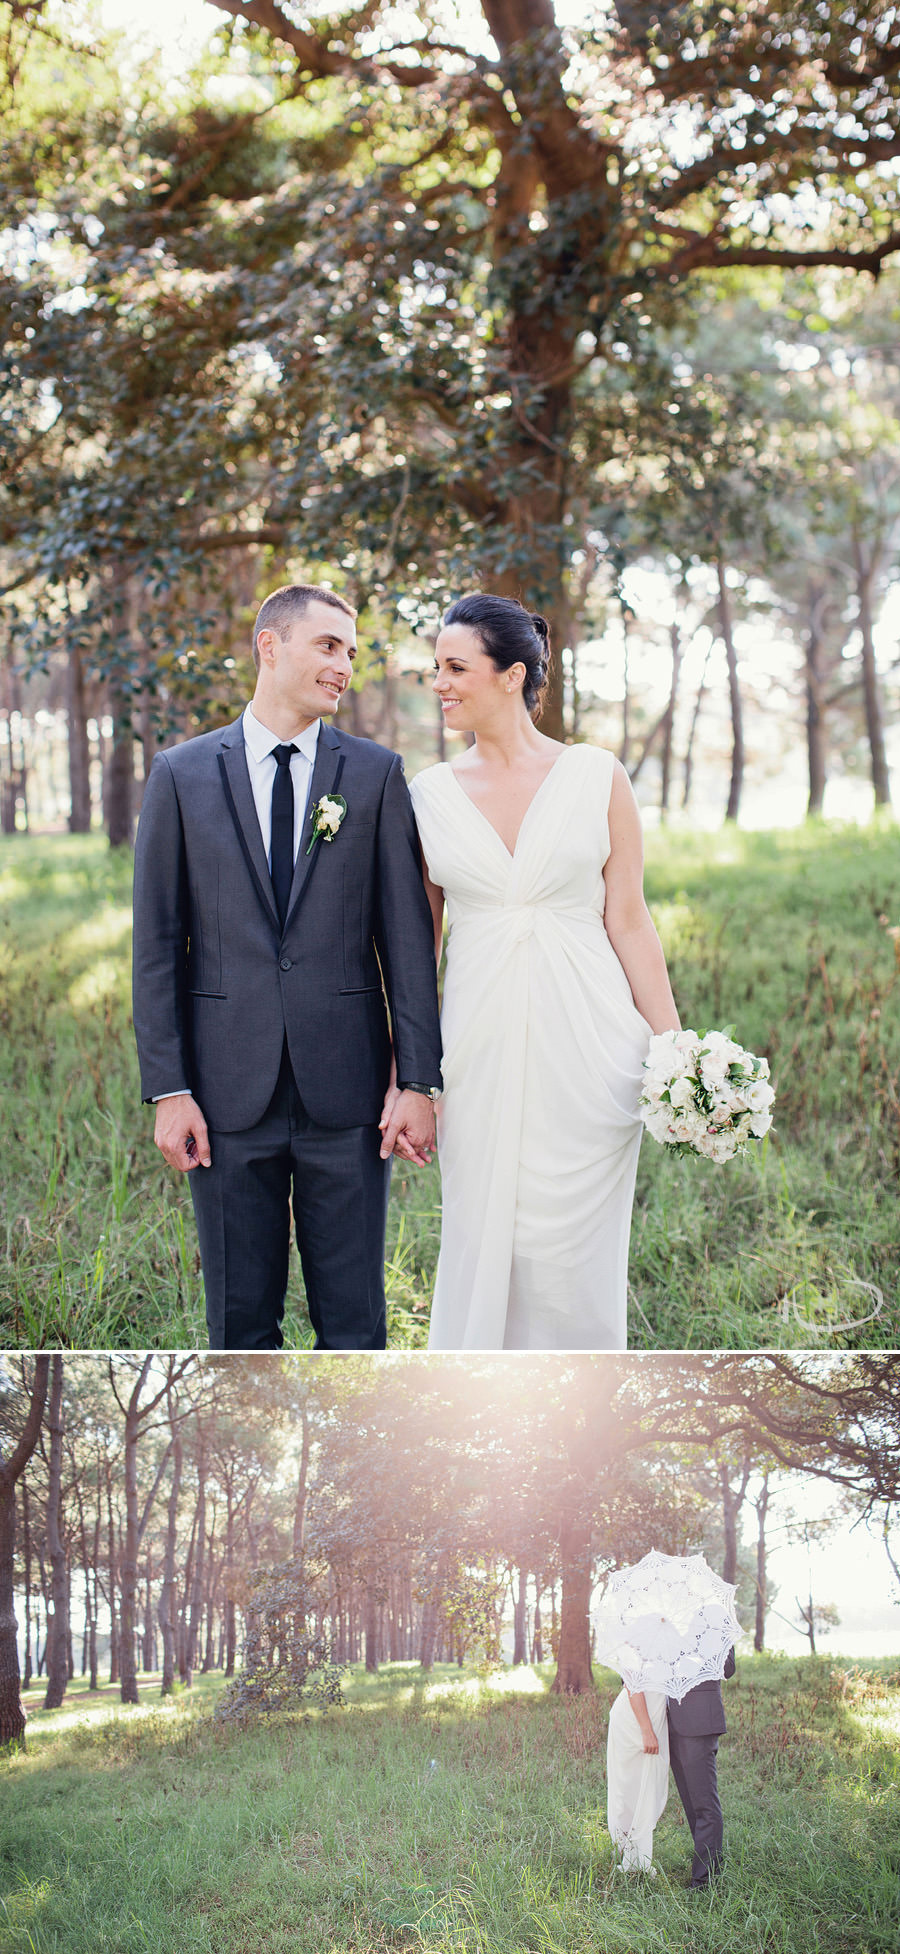 Elegant Wedding Photographers: Centennial Park Sydney location portraits